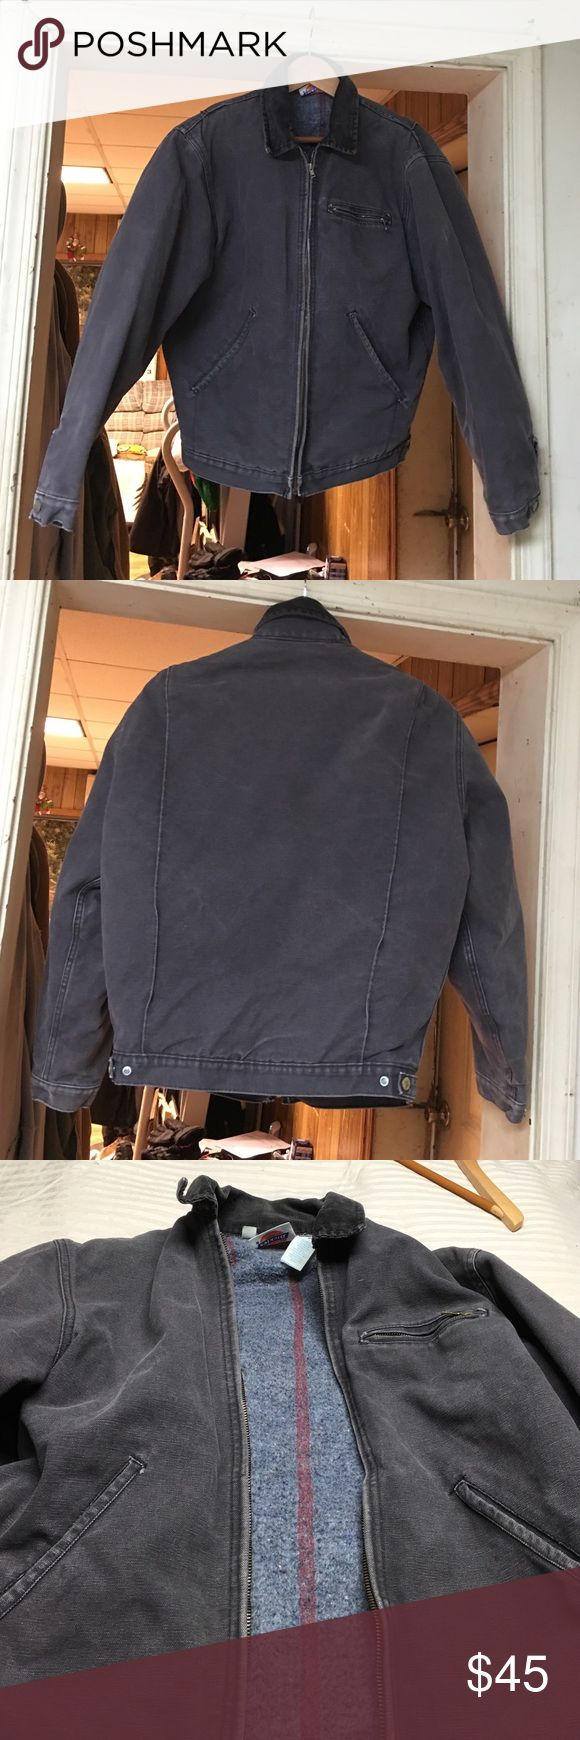 Dickies Canvas Coat Medium Women's dickies coat outside is canvas material size medium no holes zippers all work adjustable snap on the sleeves and bottom of coat Color is a dark gray Dickies Jackets & Coats Utility Jackets